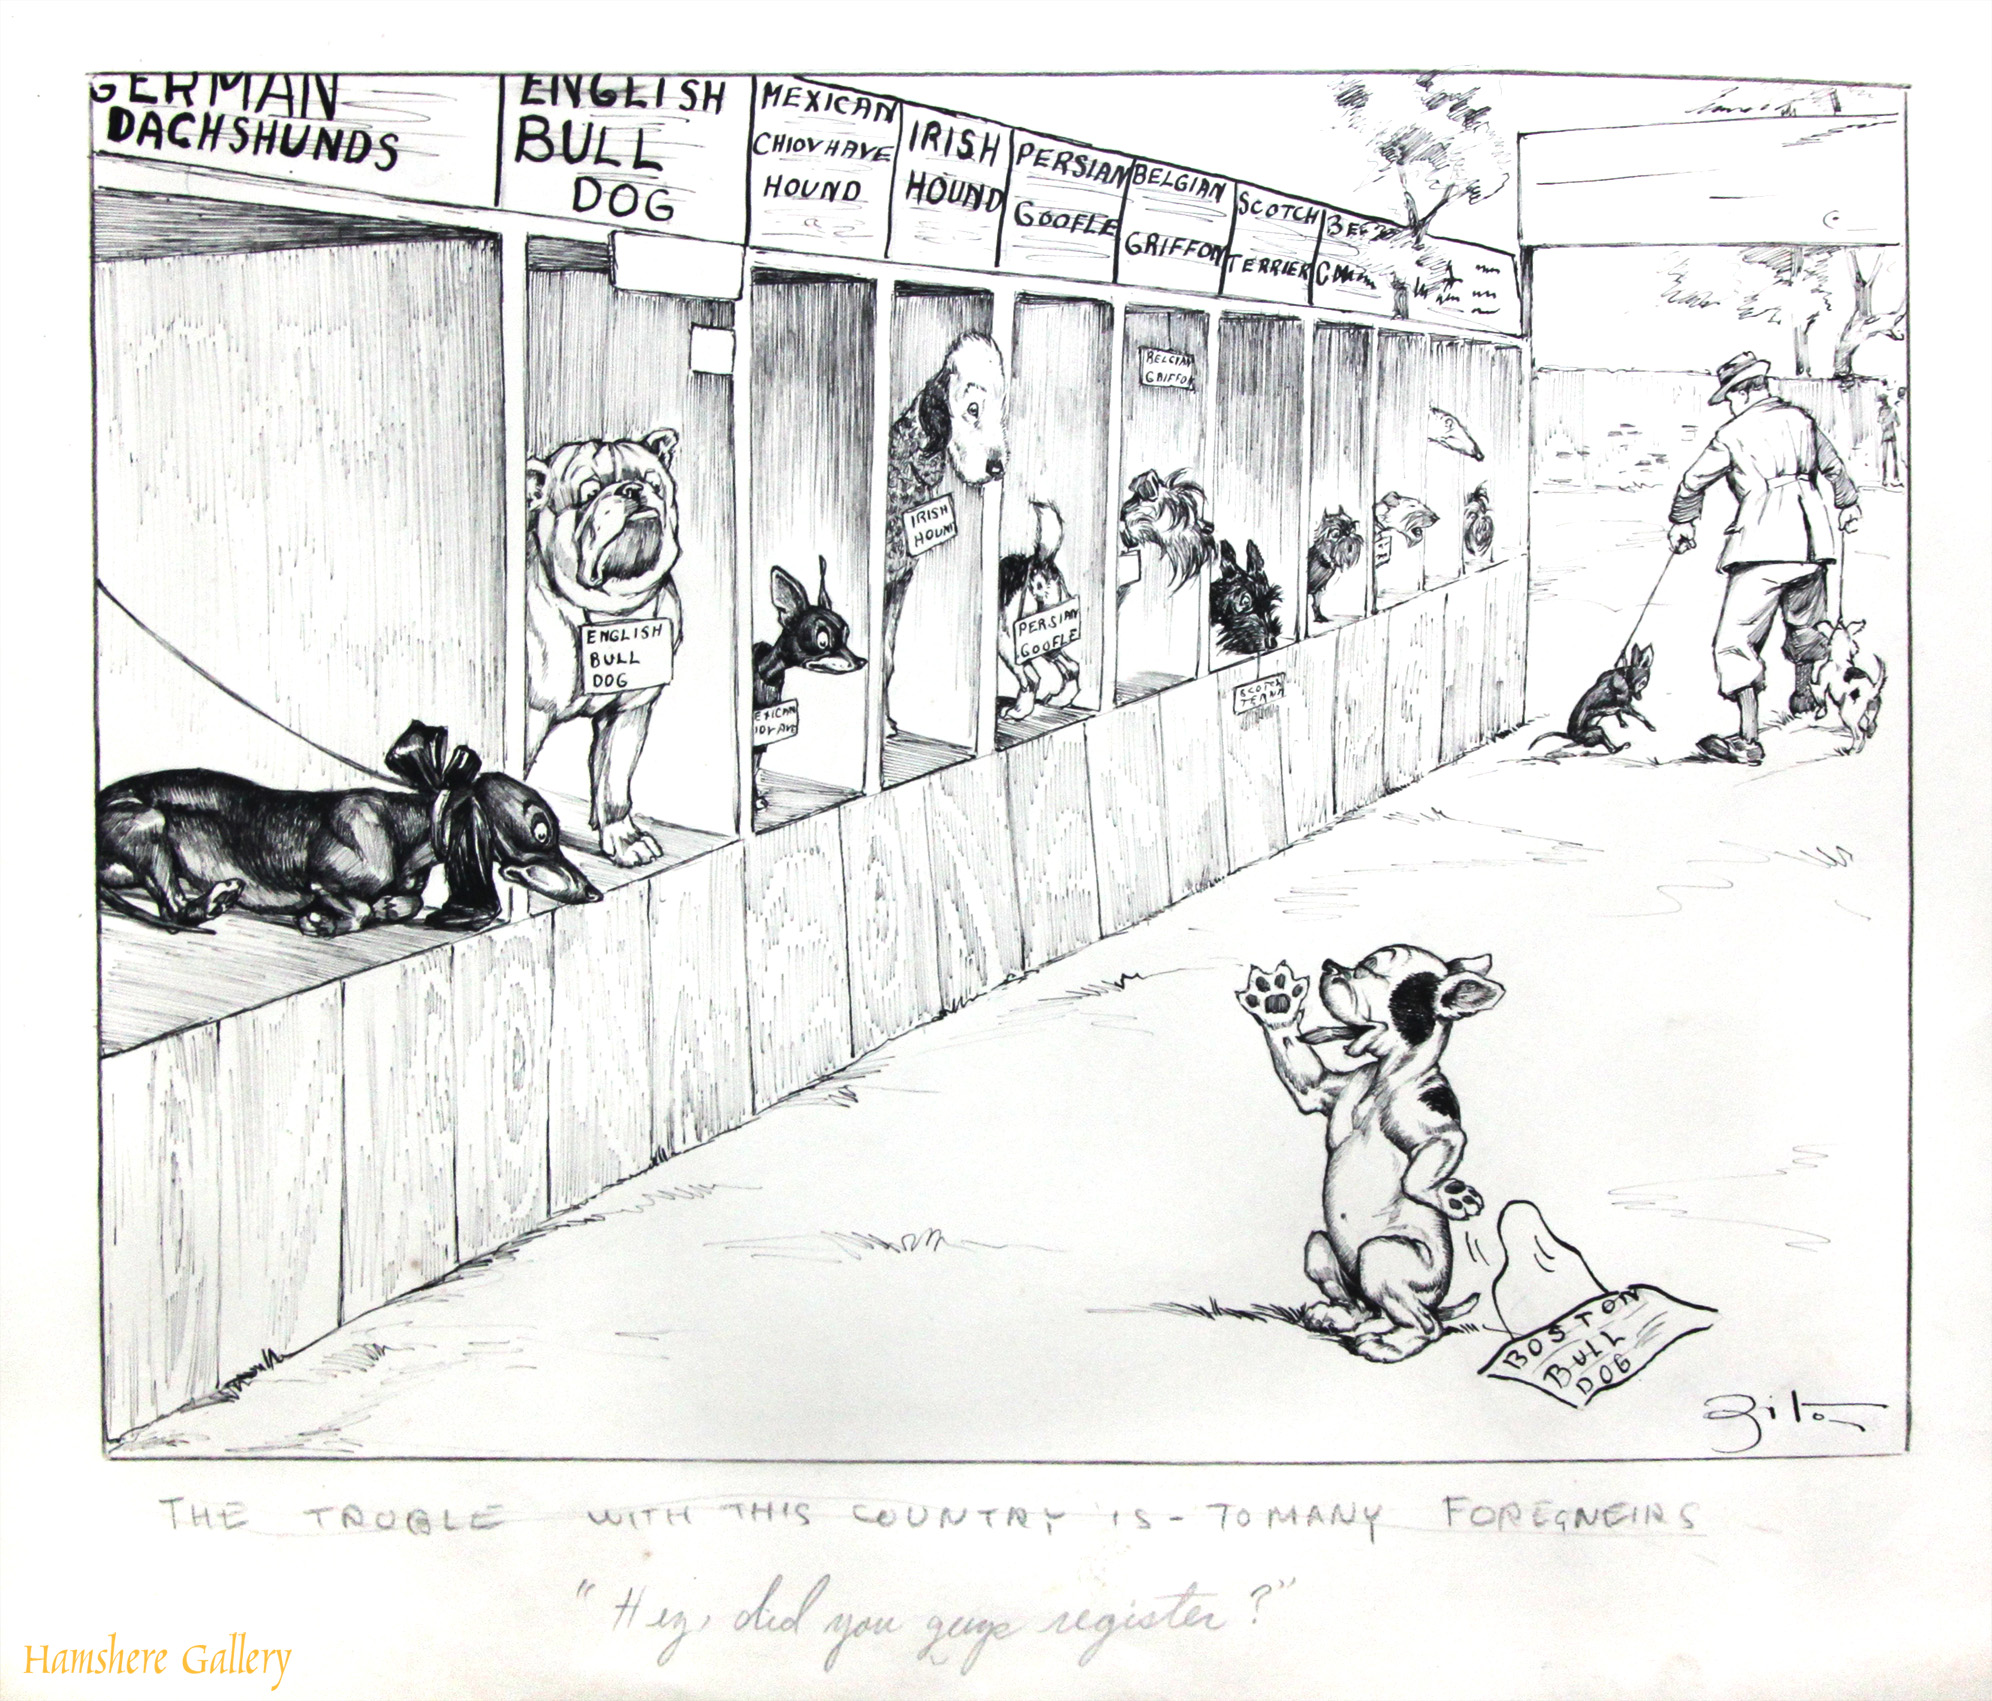 Click to see full size: A circa 1930�s pen and ink humorous canine dog / dog show / Boston / Dachshund / Bulldog / Scottish Terrier cartoon drawing by Vincenzo (Vincent) Maria Zito (European/American 1900-1966)